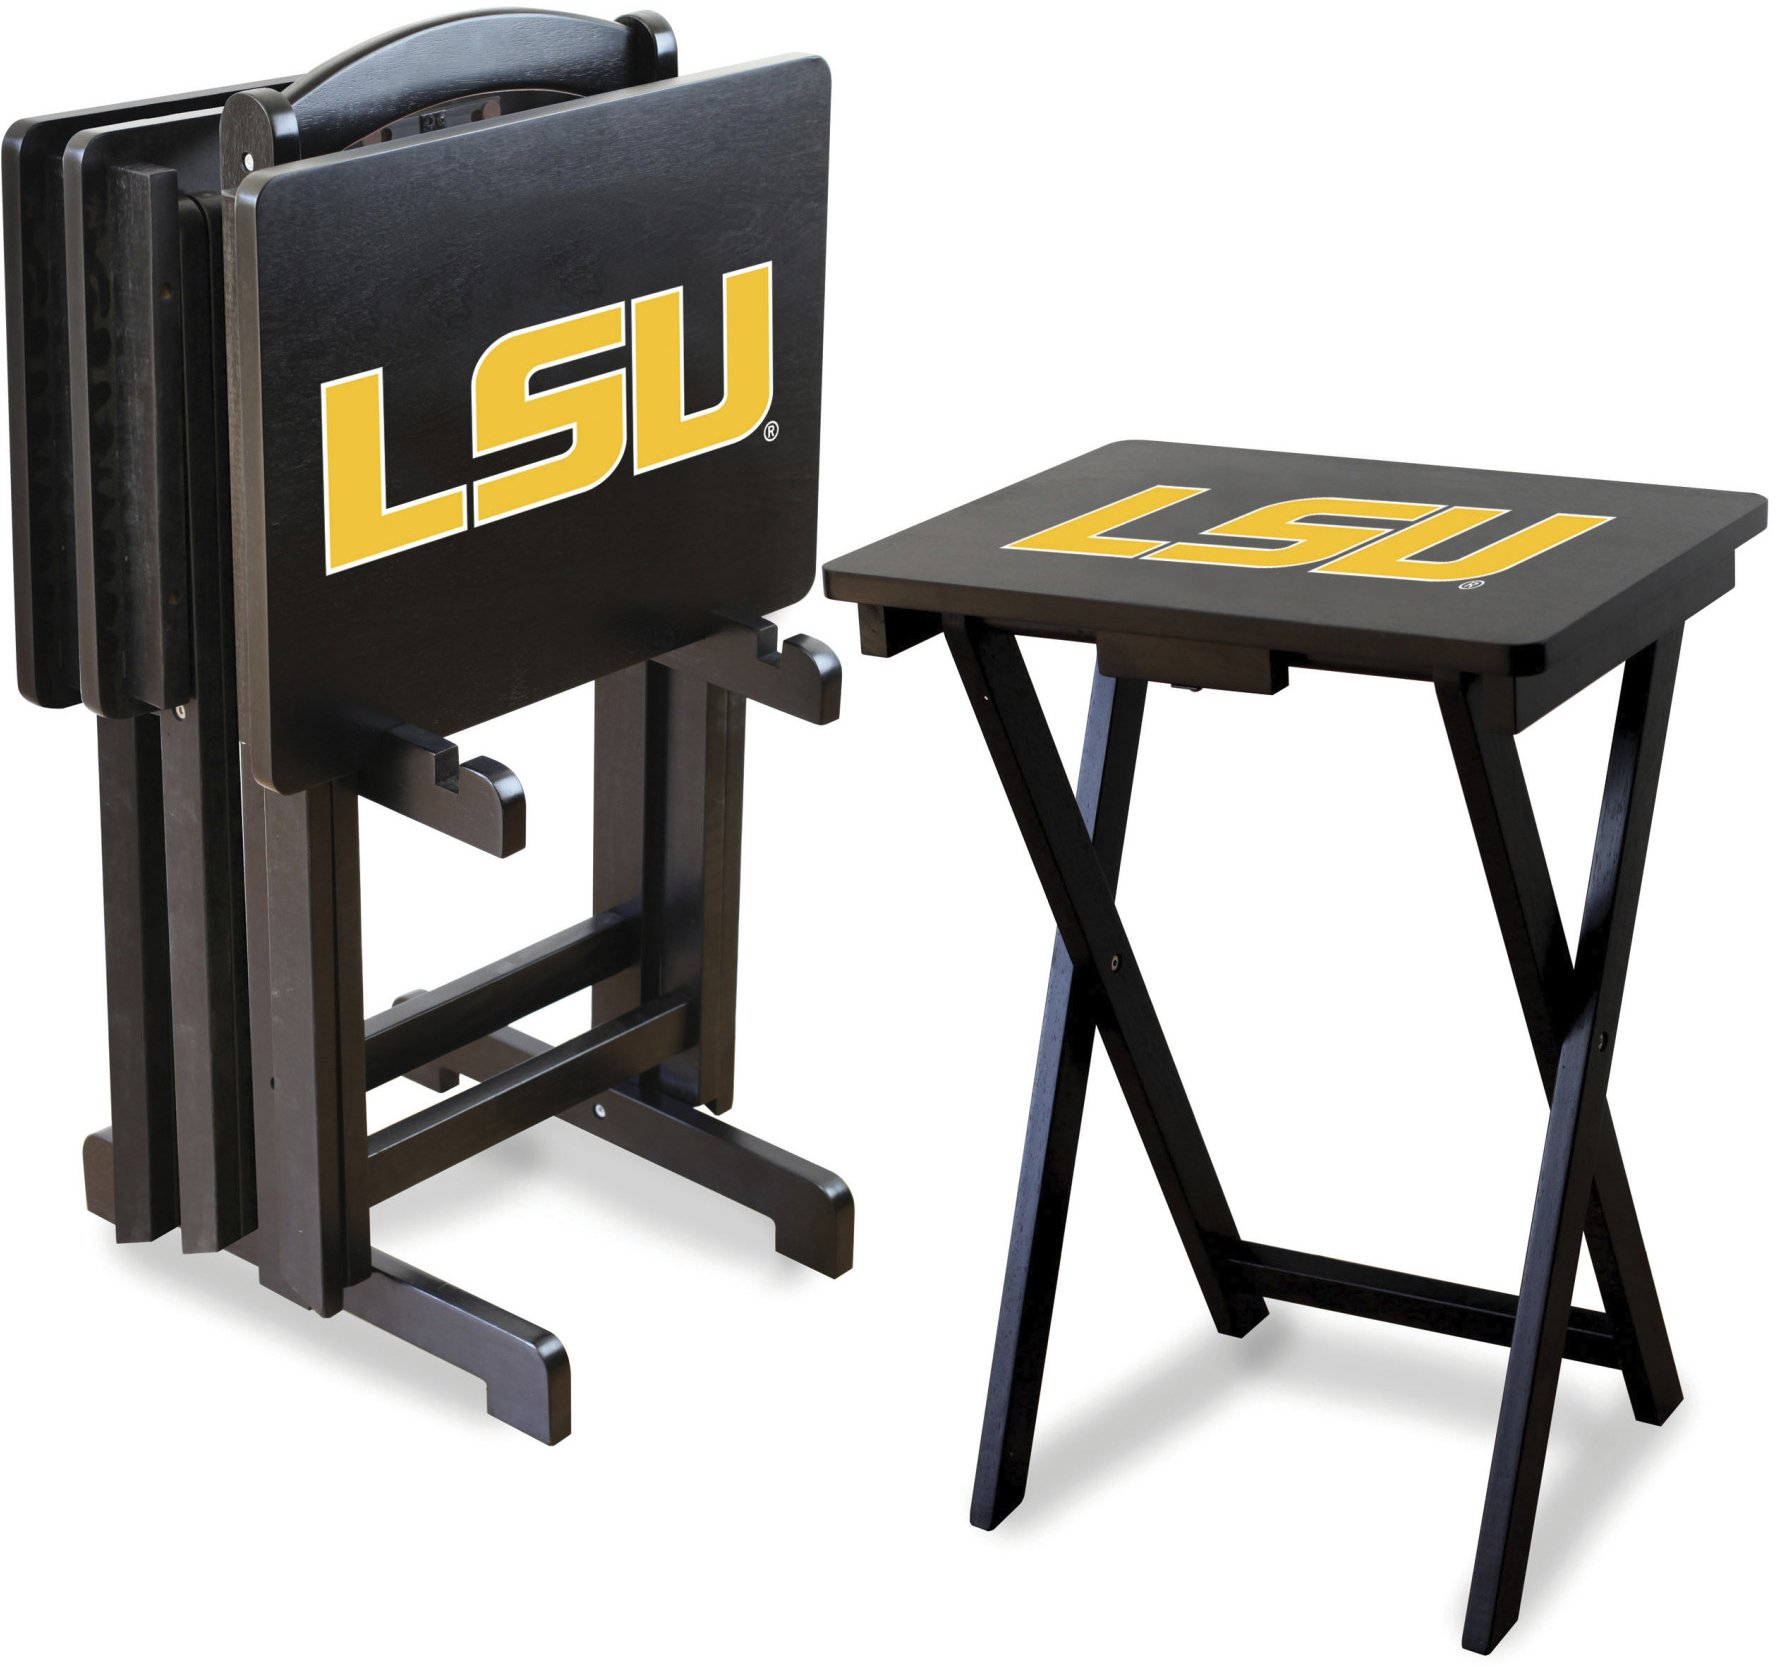 Imperial Officially Licensed NCAA Merchandise: Foldable Wood TV Tray Table Set with Stand, LSU Tigers by Imperial